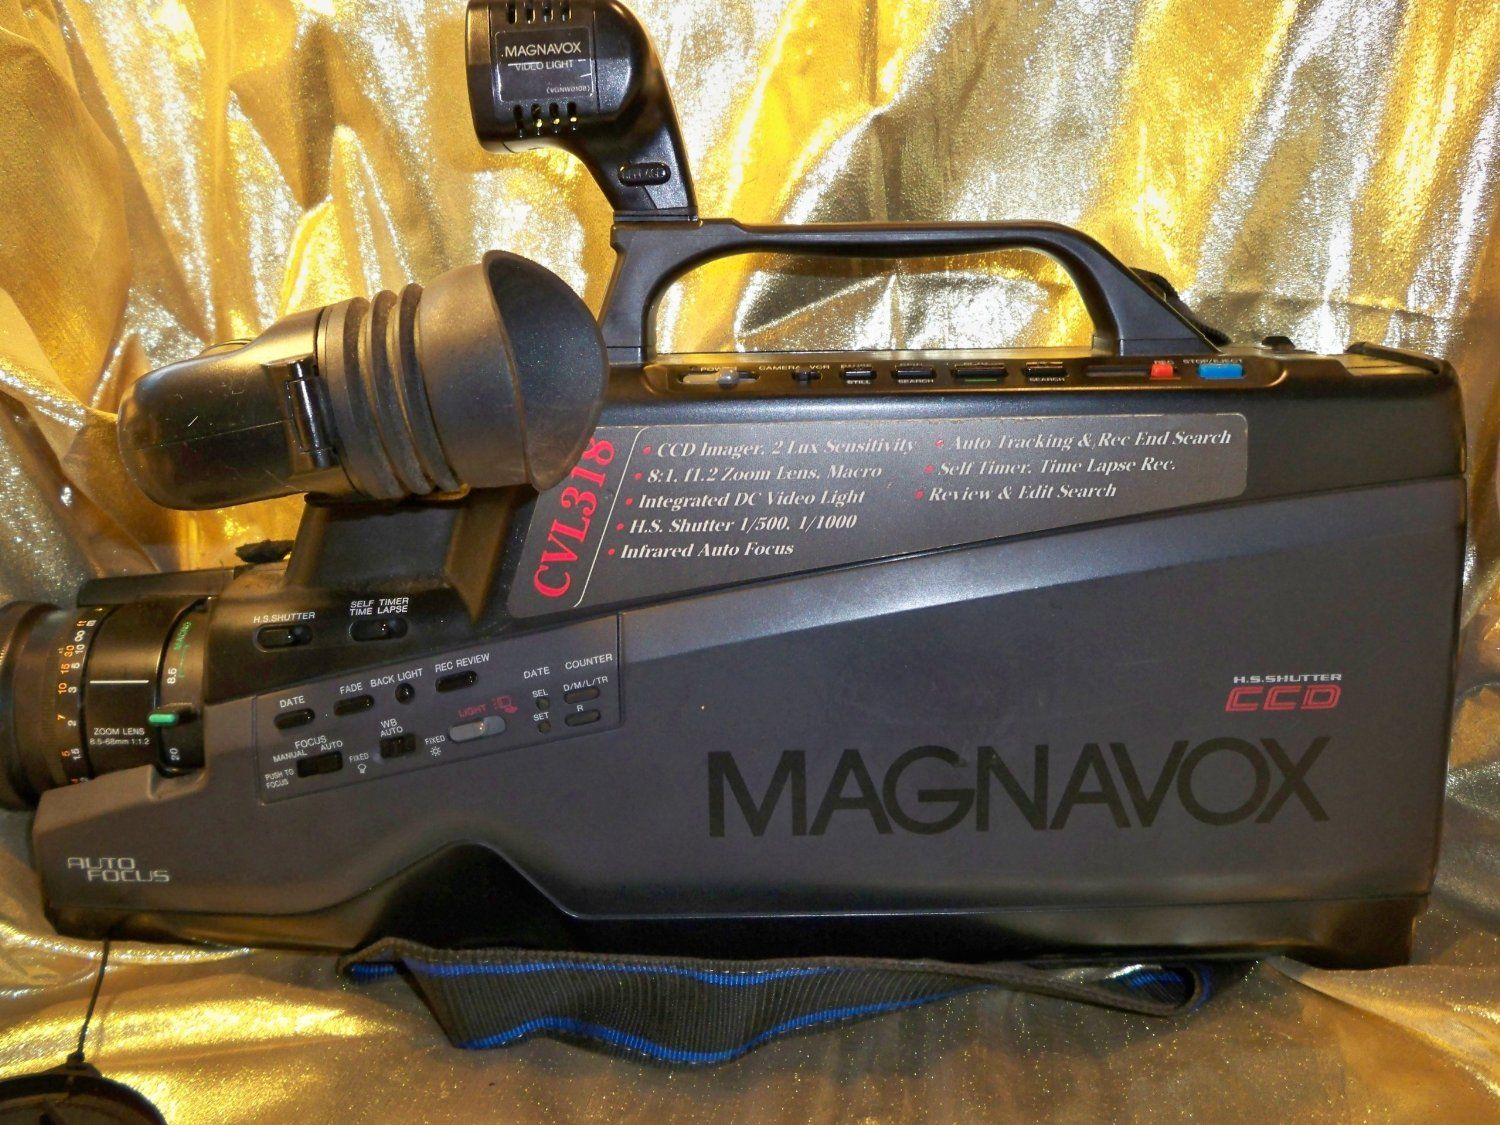 Amazon Com Magnavox Vhs Camcorder Camera Photo This Is How We Recorded Home Movies Camcorder Vhs Home Movies